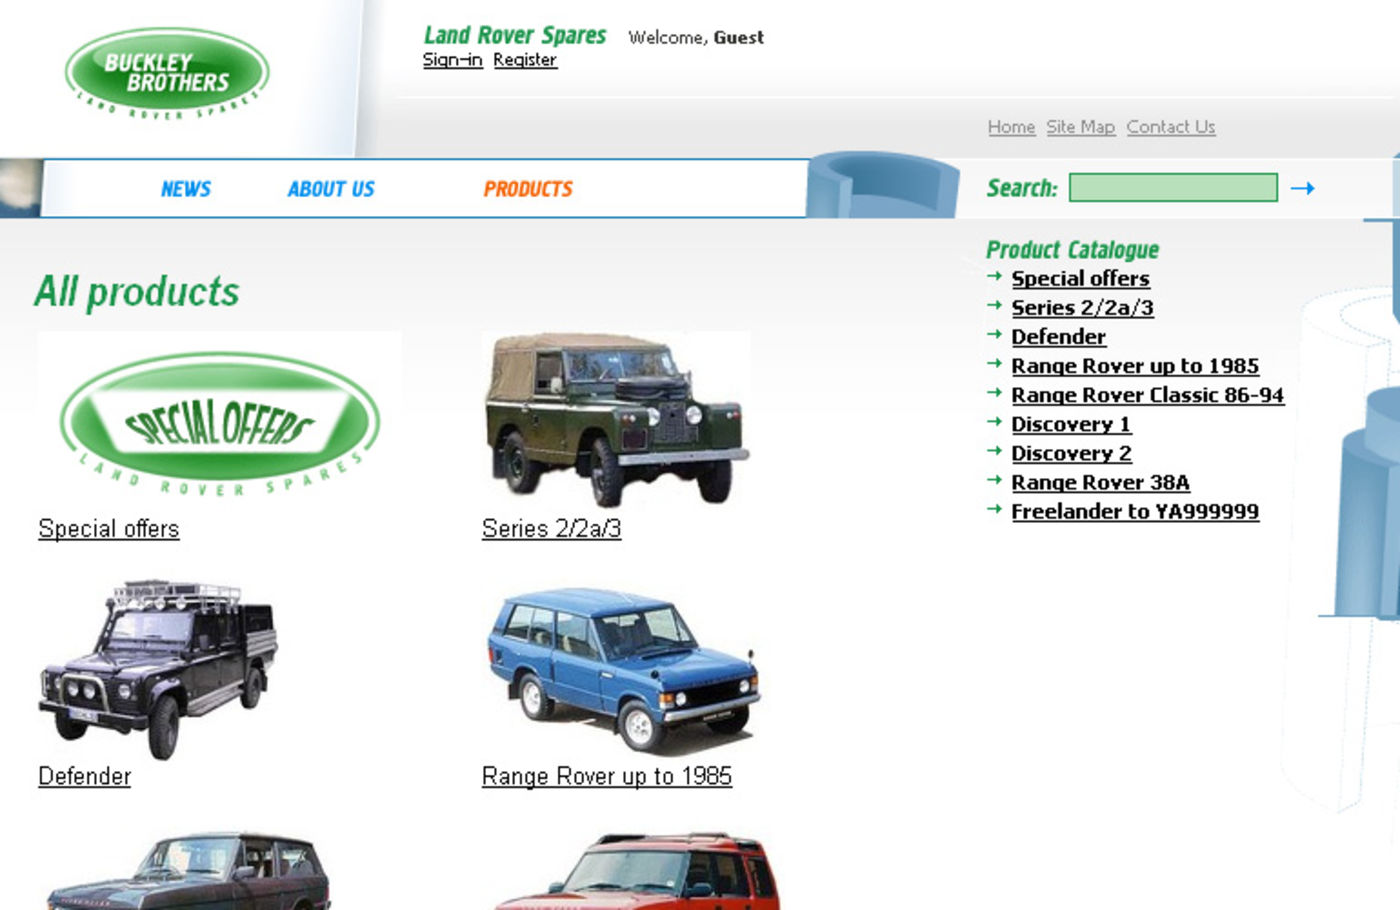 Land Rover Spares Product categories